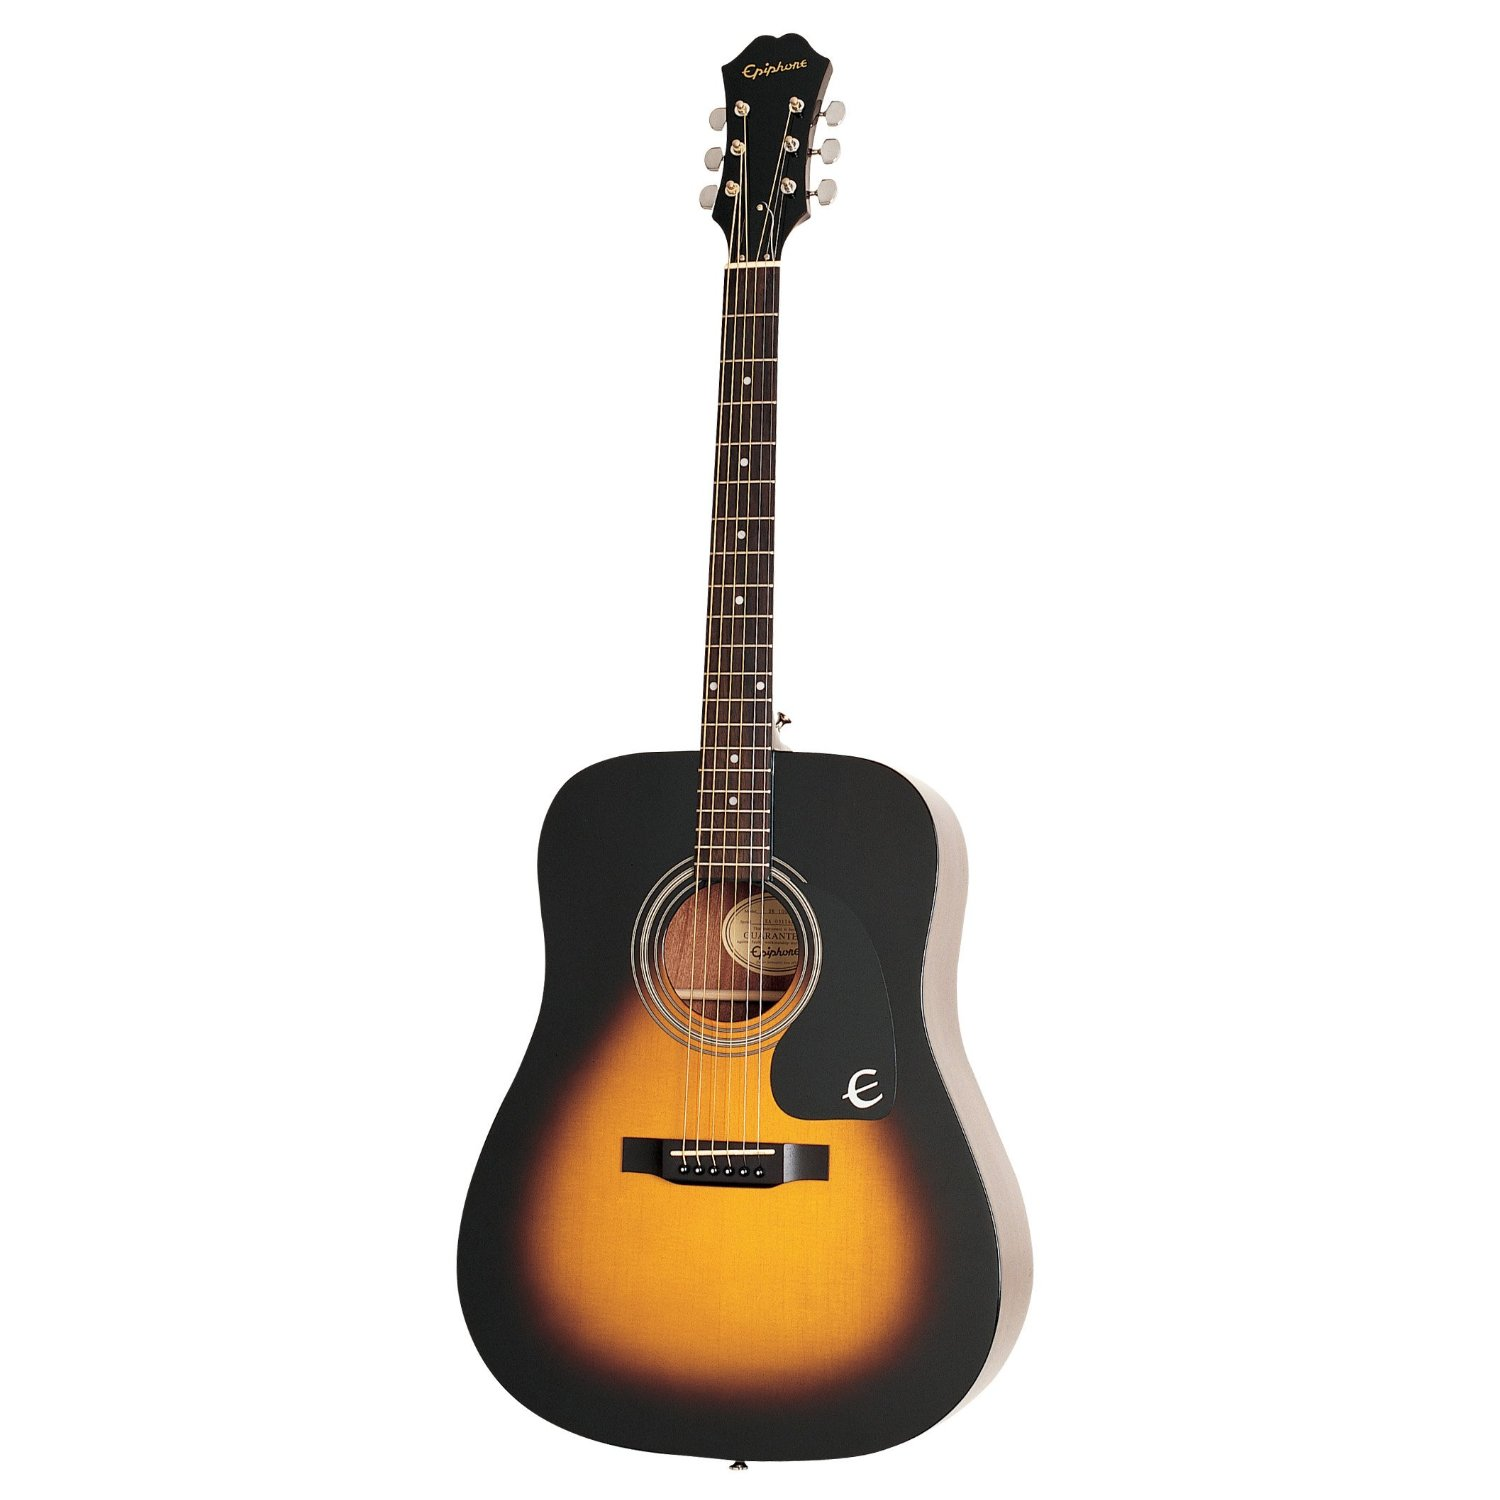 epiphone dr 100 acoustic guitar review epiphone dr 100 vs fender starcaster acoustic guitar. Black Bedroom Furniture Sets. Home Design Ideas